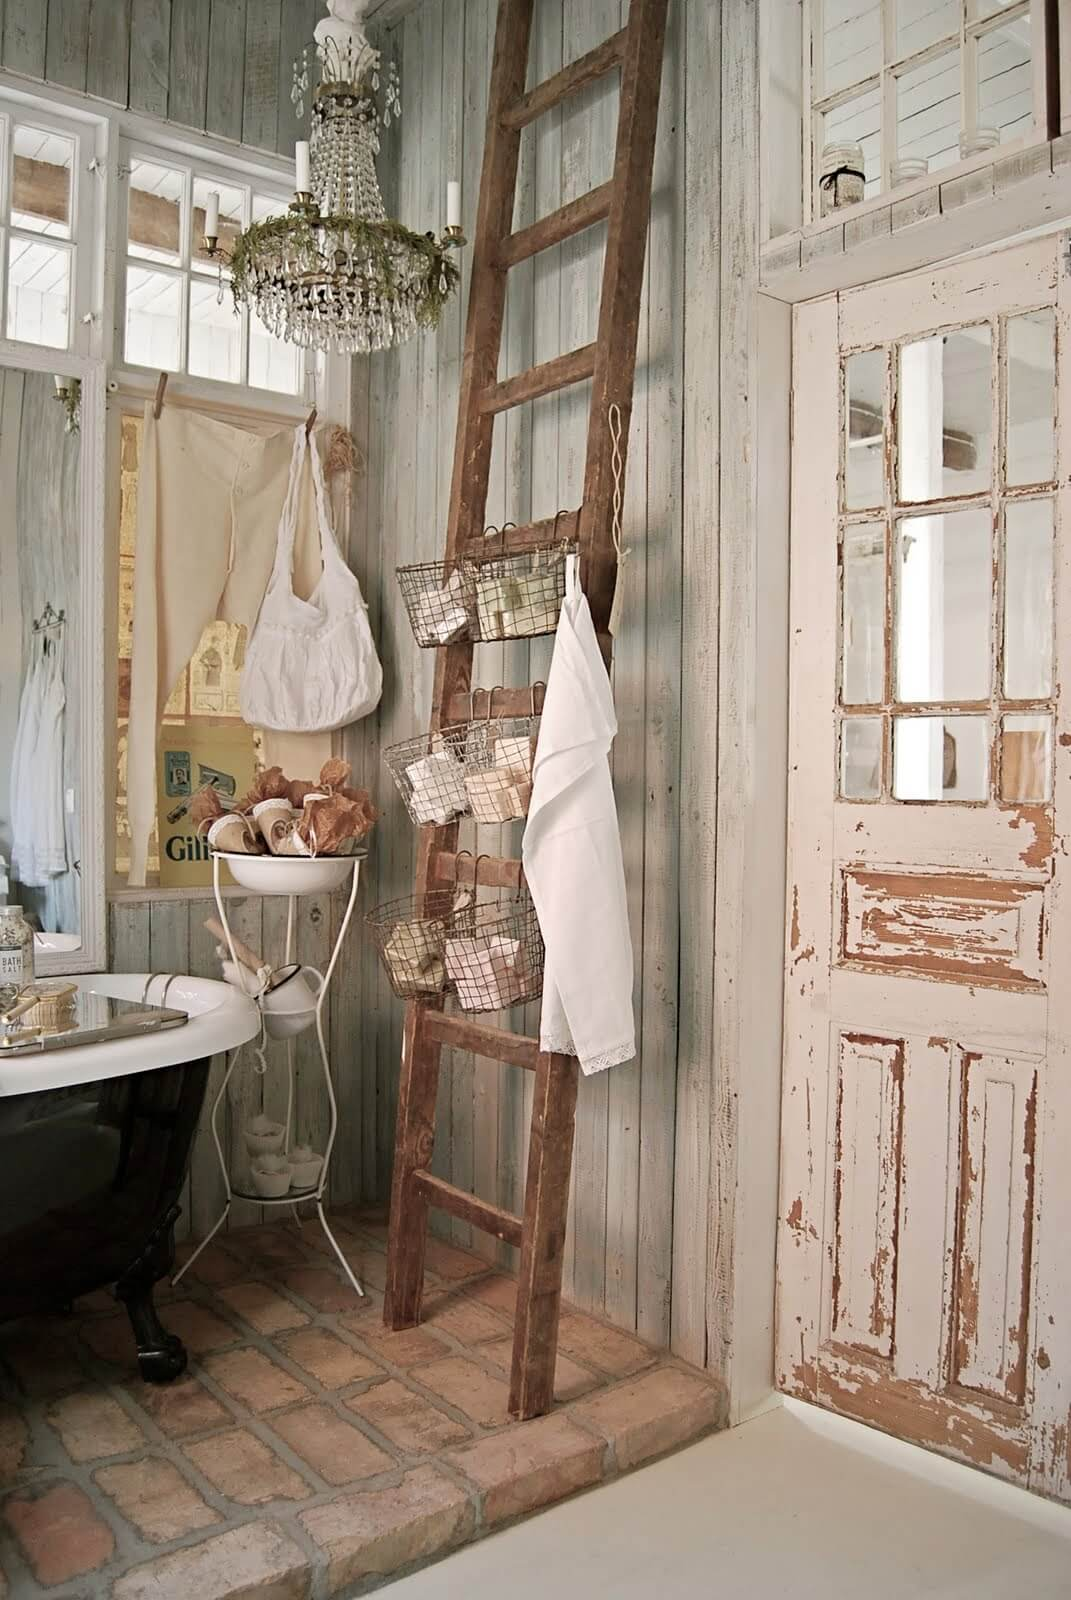 15 lovely shabby chic bathroom decor ideas - Bathroom Decorating Ideas Shabby Chic